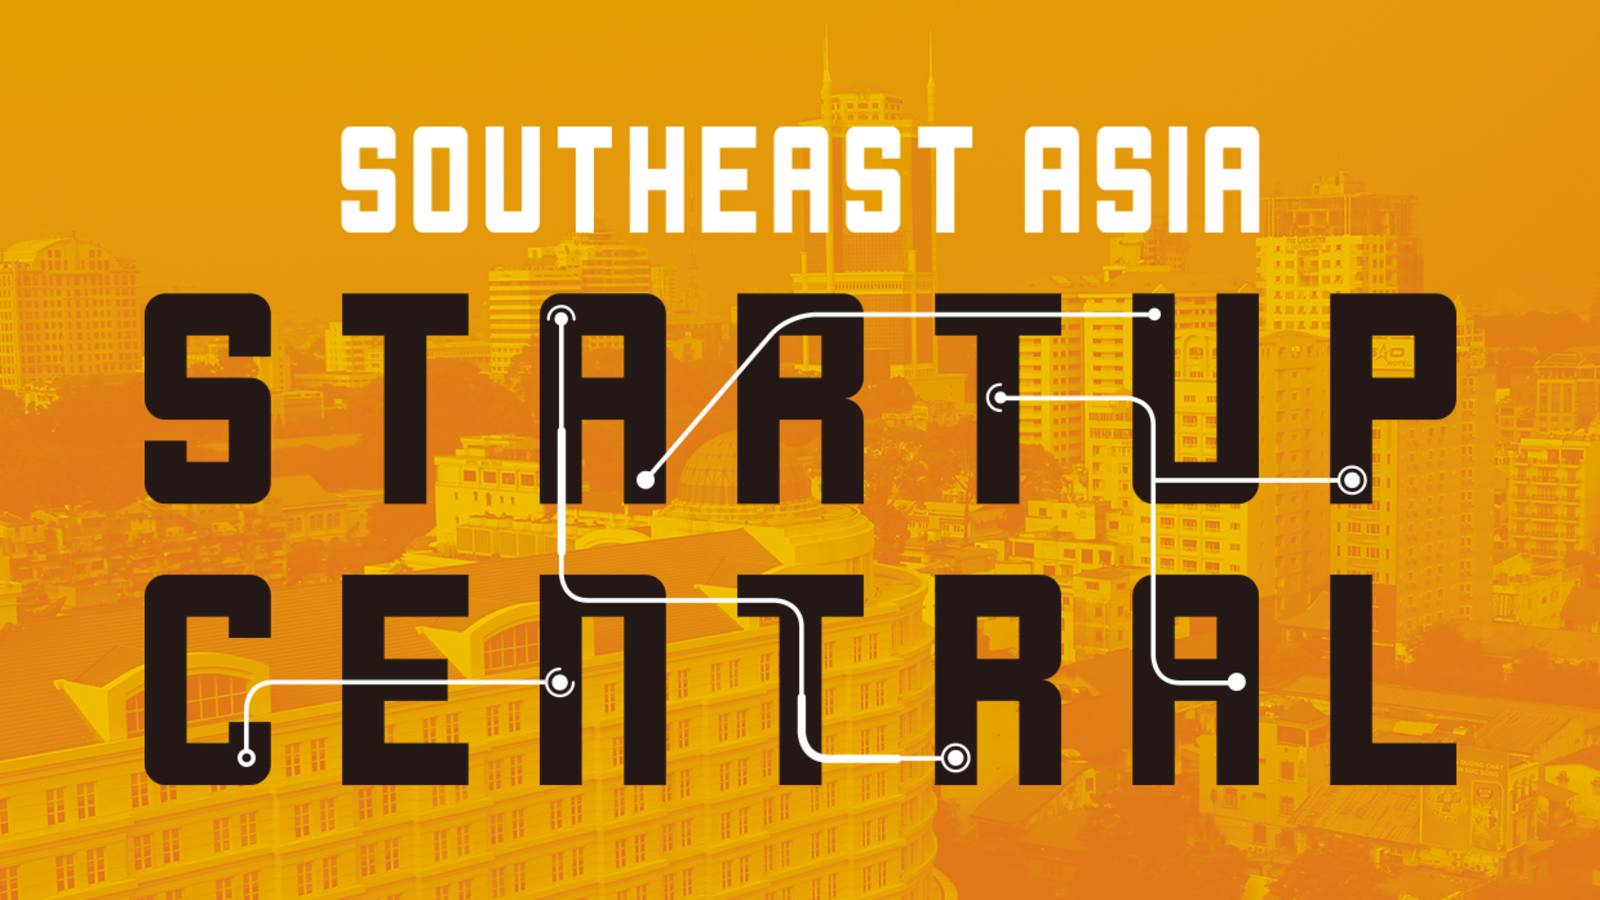 Google Startup Accelerator South East Asia